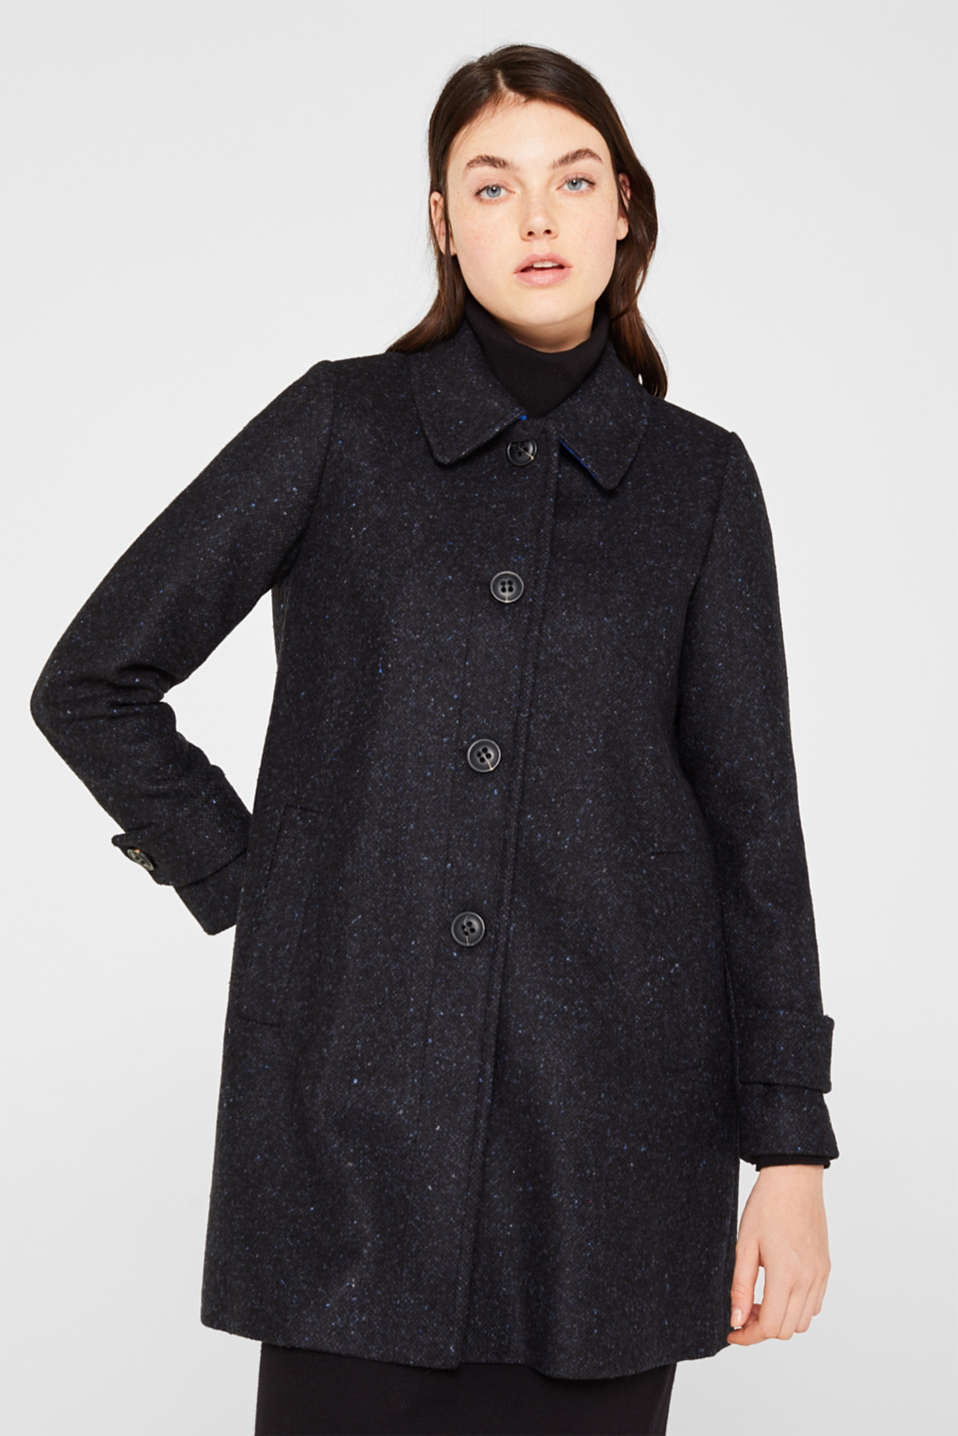 edc - Made of blended wool: Coat with a salt and pepper look